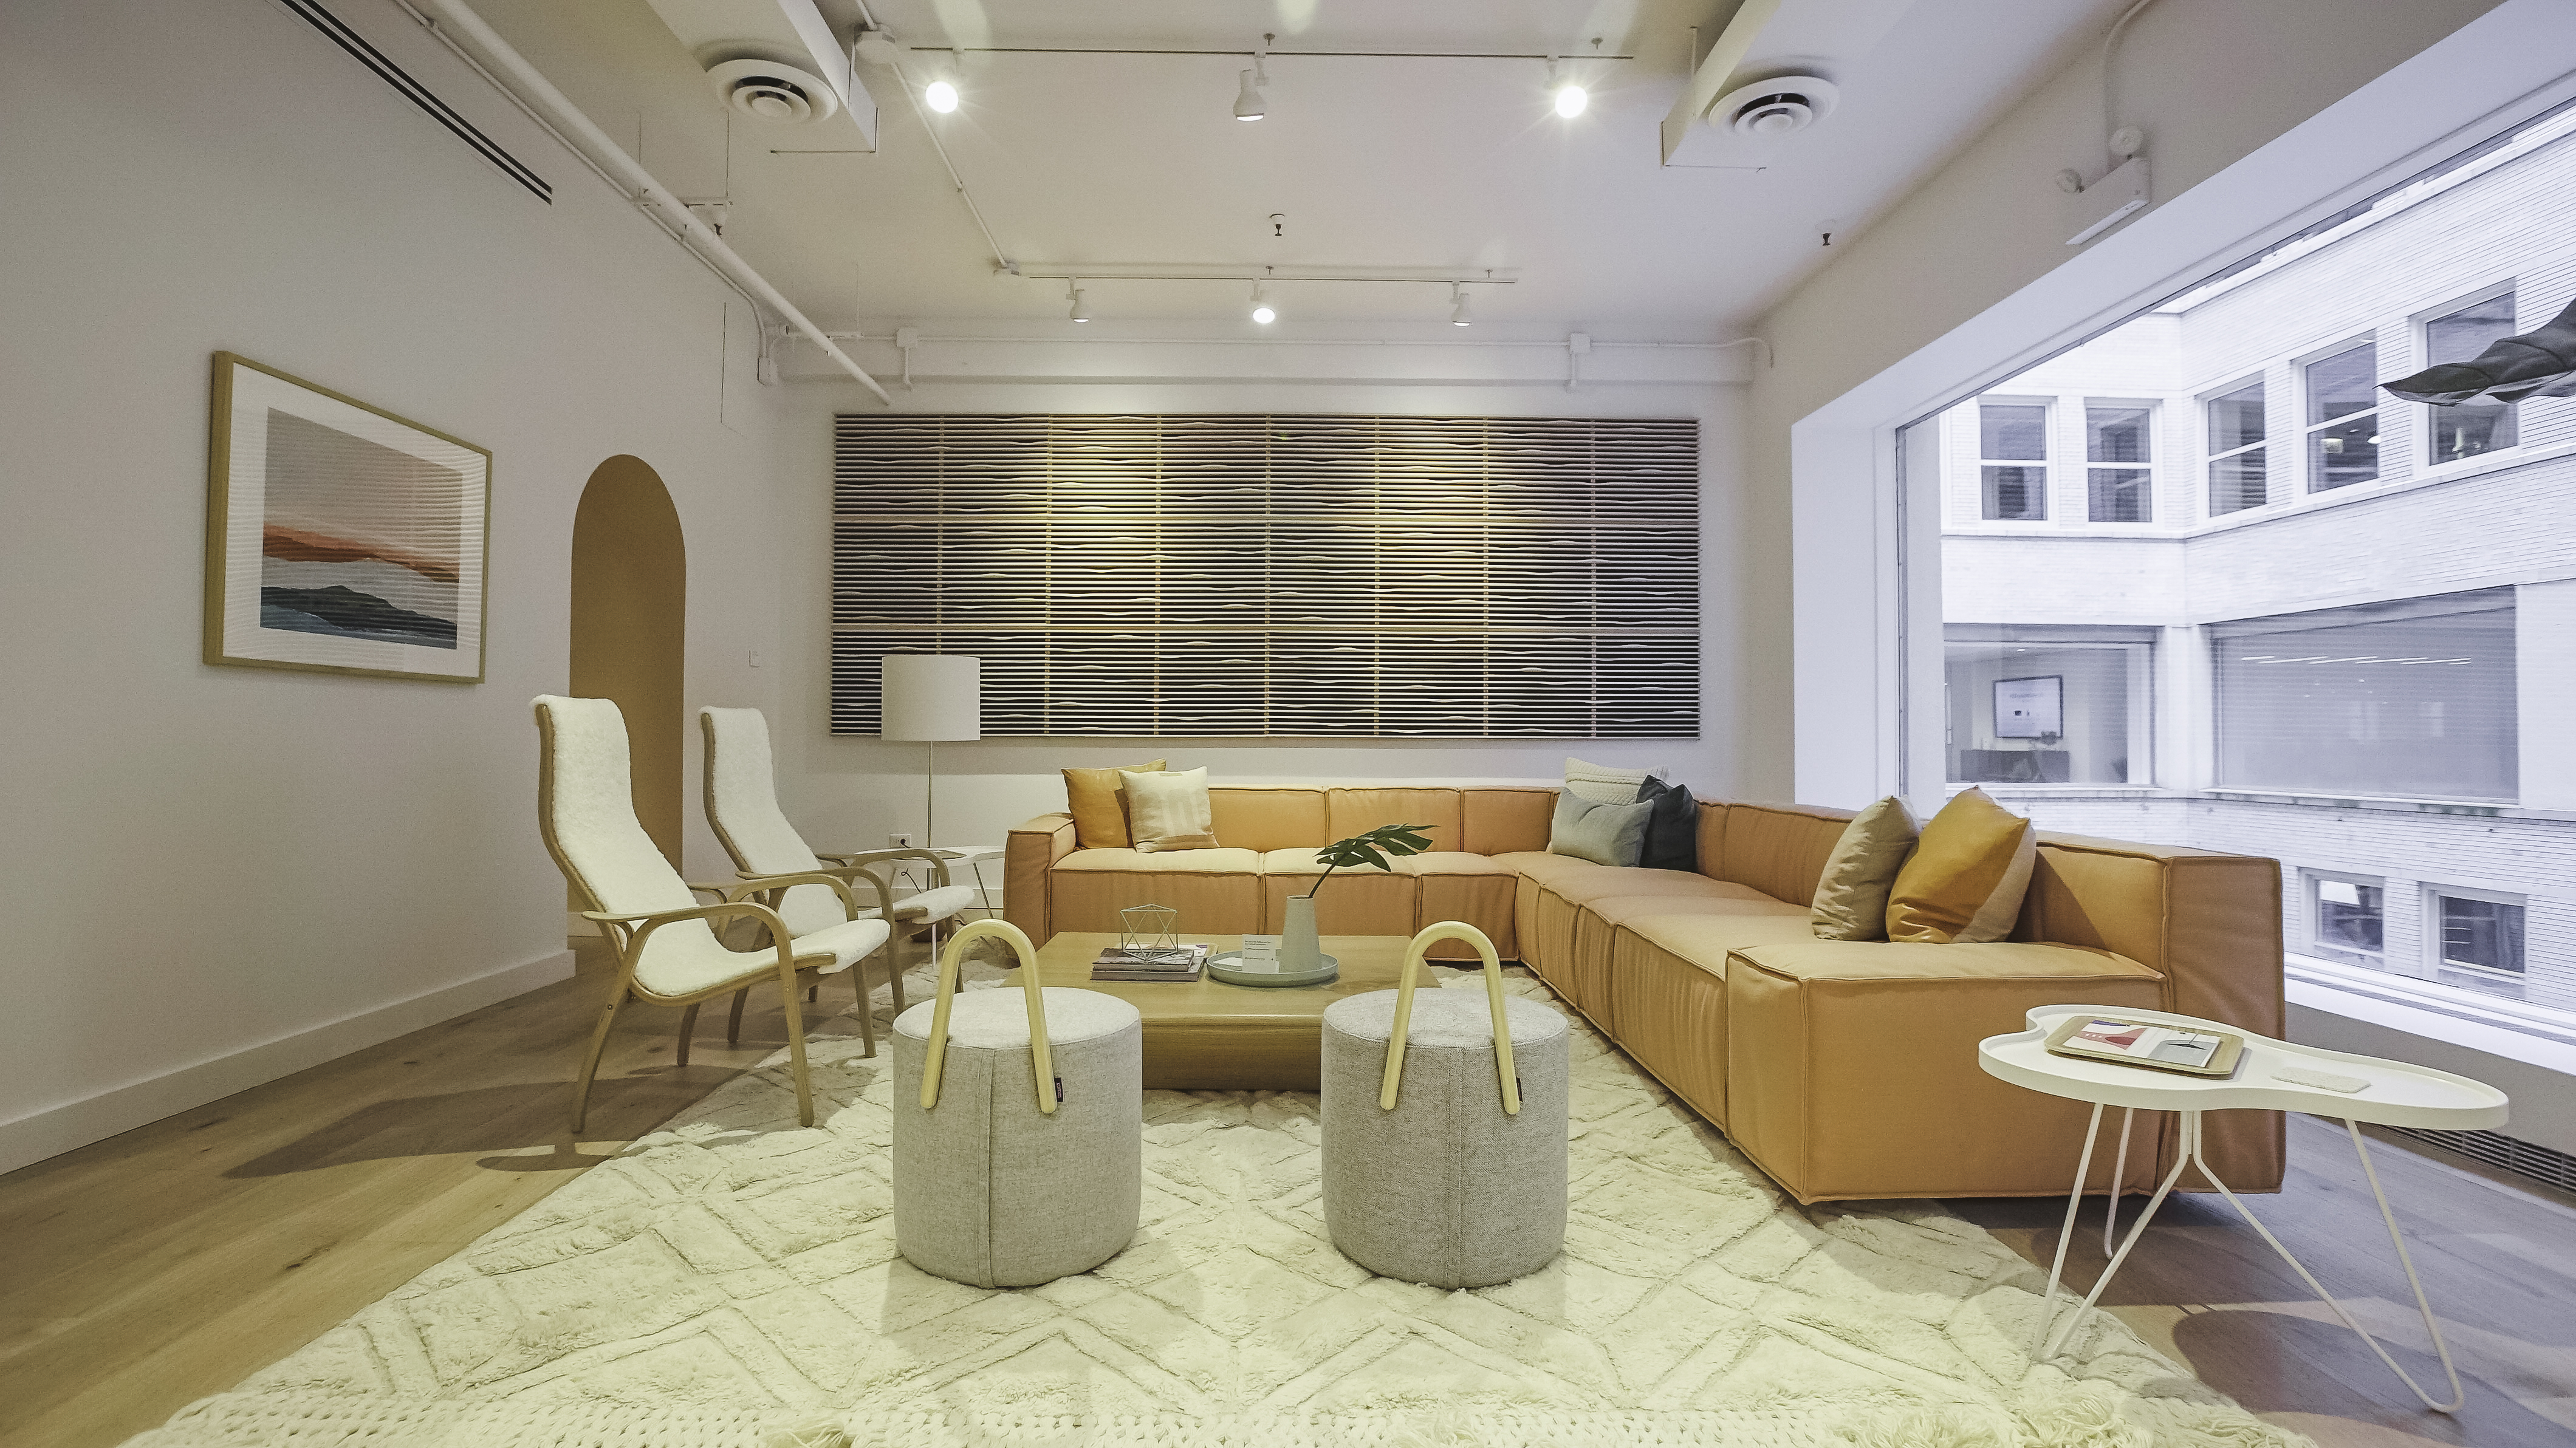 Image of Hightower's showroom with a pale peach colored sectional, two Lamino chairs with white sheepskin, and two Amstelle Poufs. The room has a white rug and wood floors.